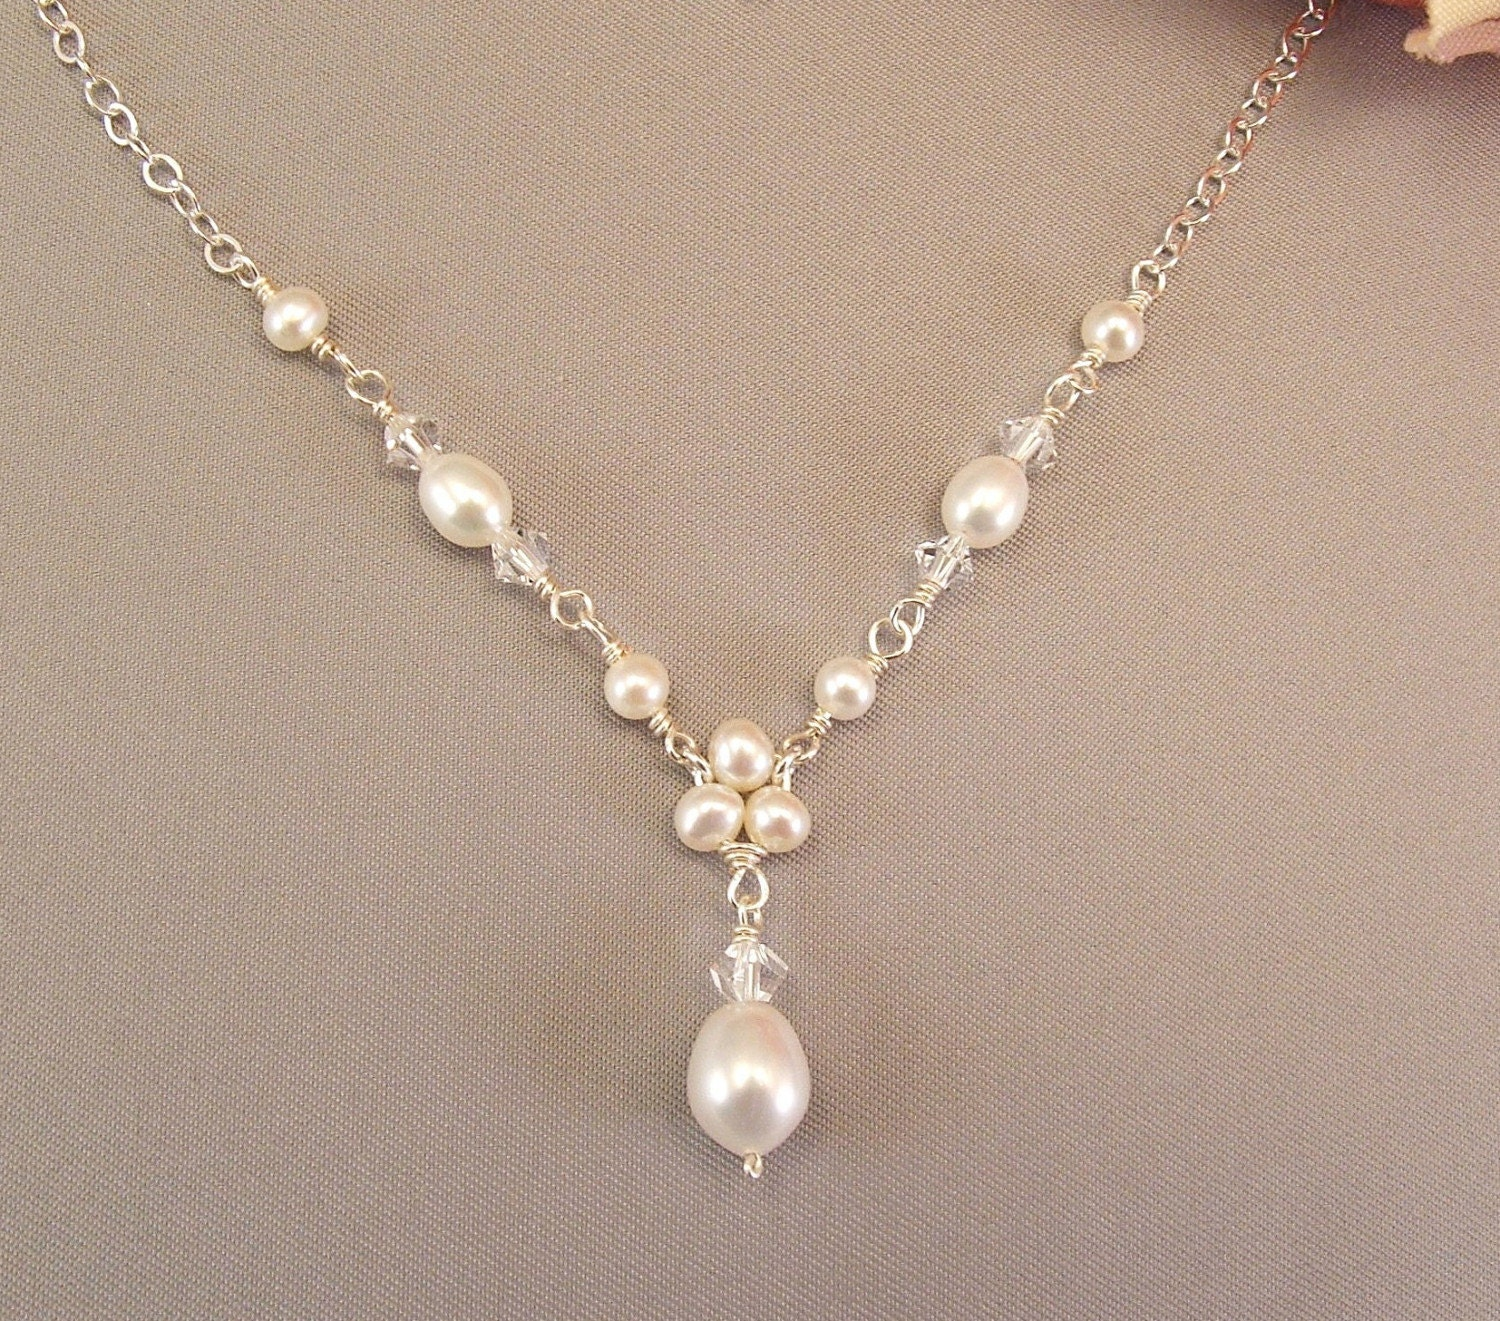 Simple elegant necklace